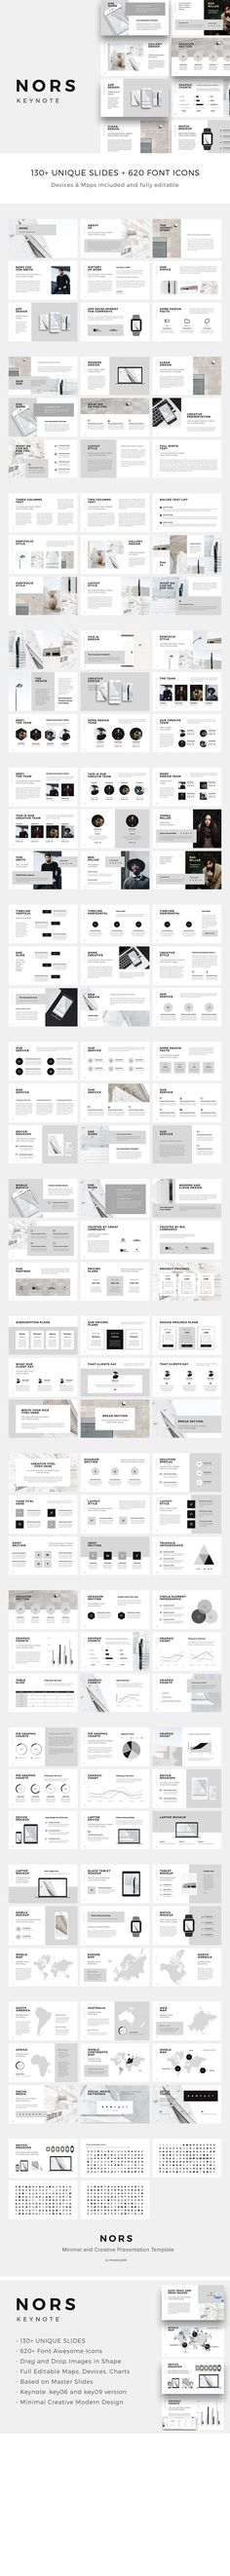 NORS Keynote Template Presentation Slides modern, creative, minimal, clean and professional design for Business, Agency, Marketing, Proposal + Big Bonus Free Stock Photos and Psd Mockups are in download included by PixaSquare on @creativemarket